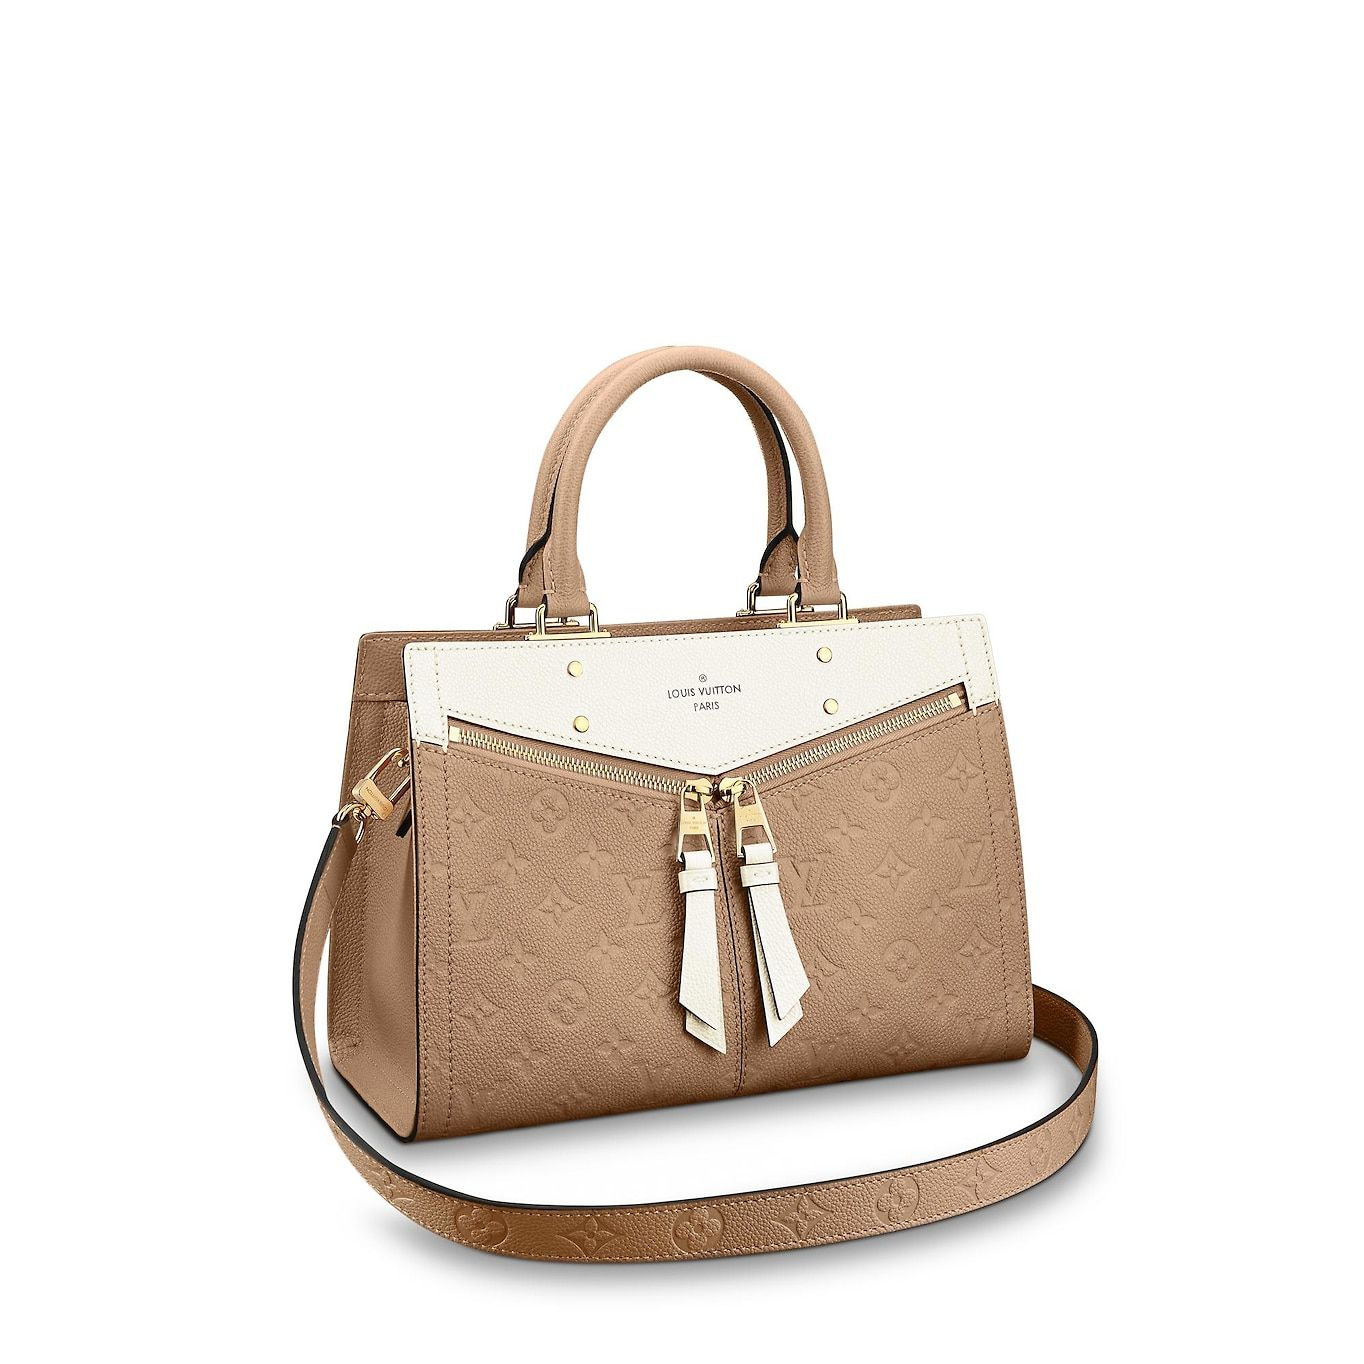 3e8ff79dd2ce Sully PM Monogram Empreinte Leather in Women s Handbags Top Handles  collections by Louis Vuitton